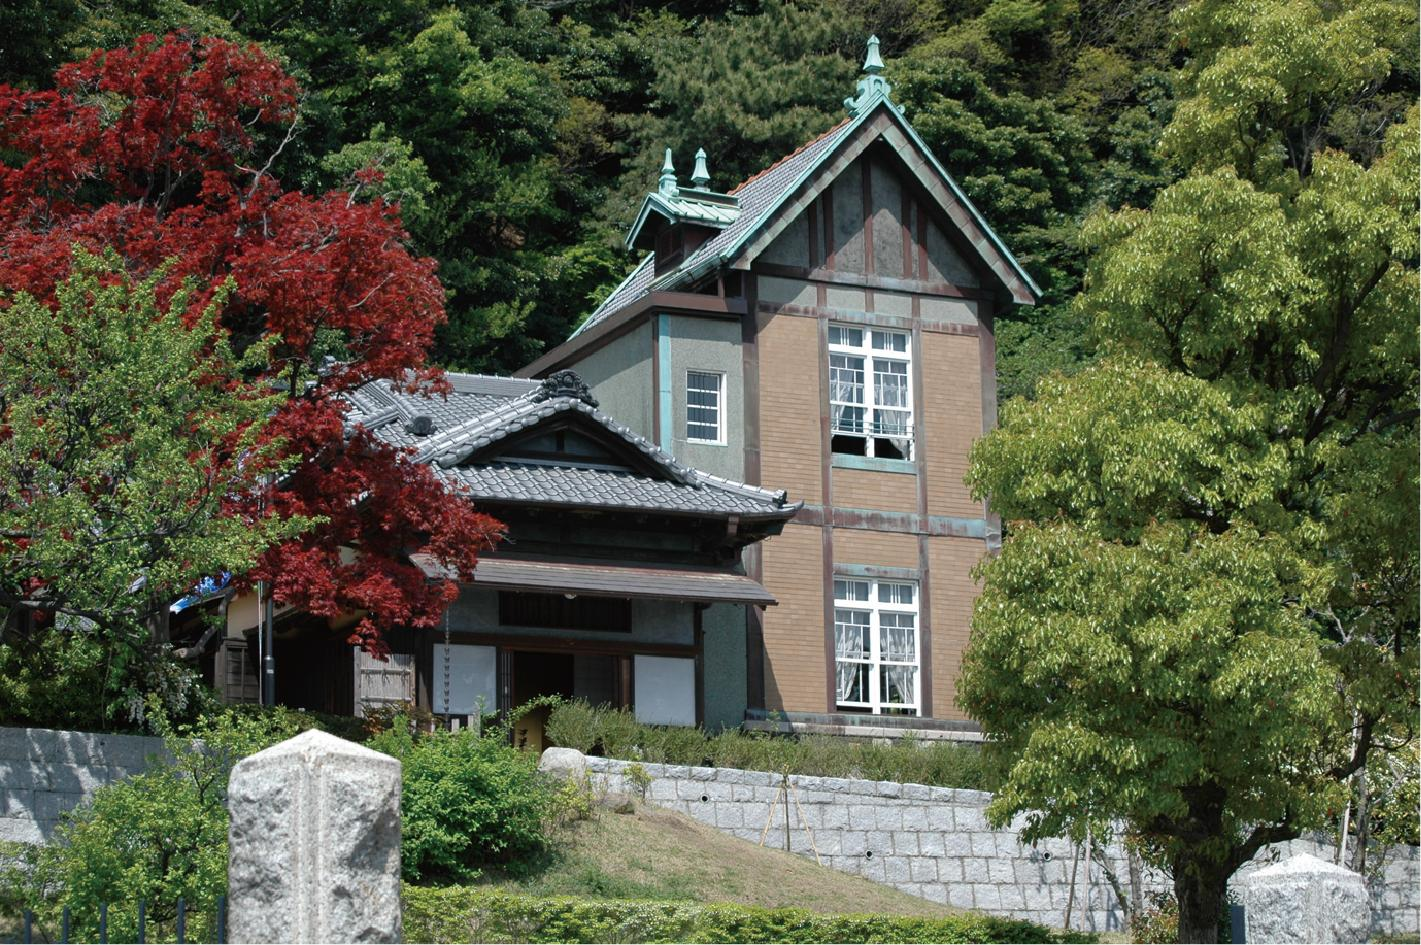 Negishi Natsukashi Park (the old House of Yanagishita Family)